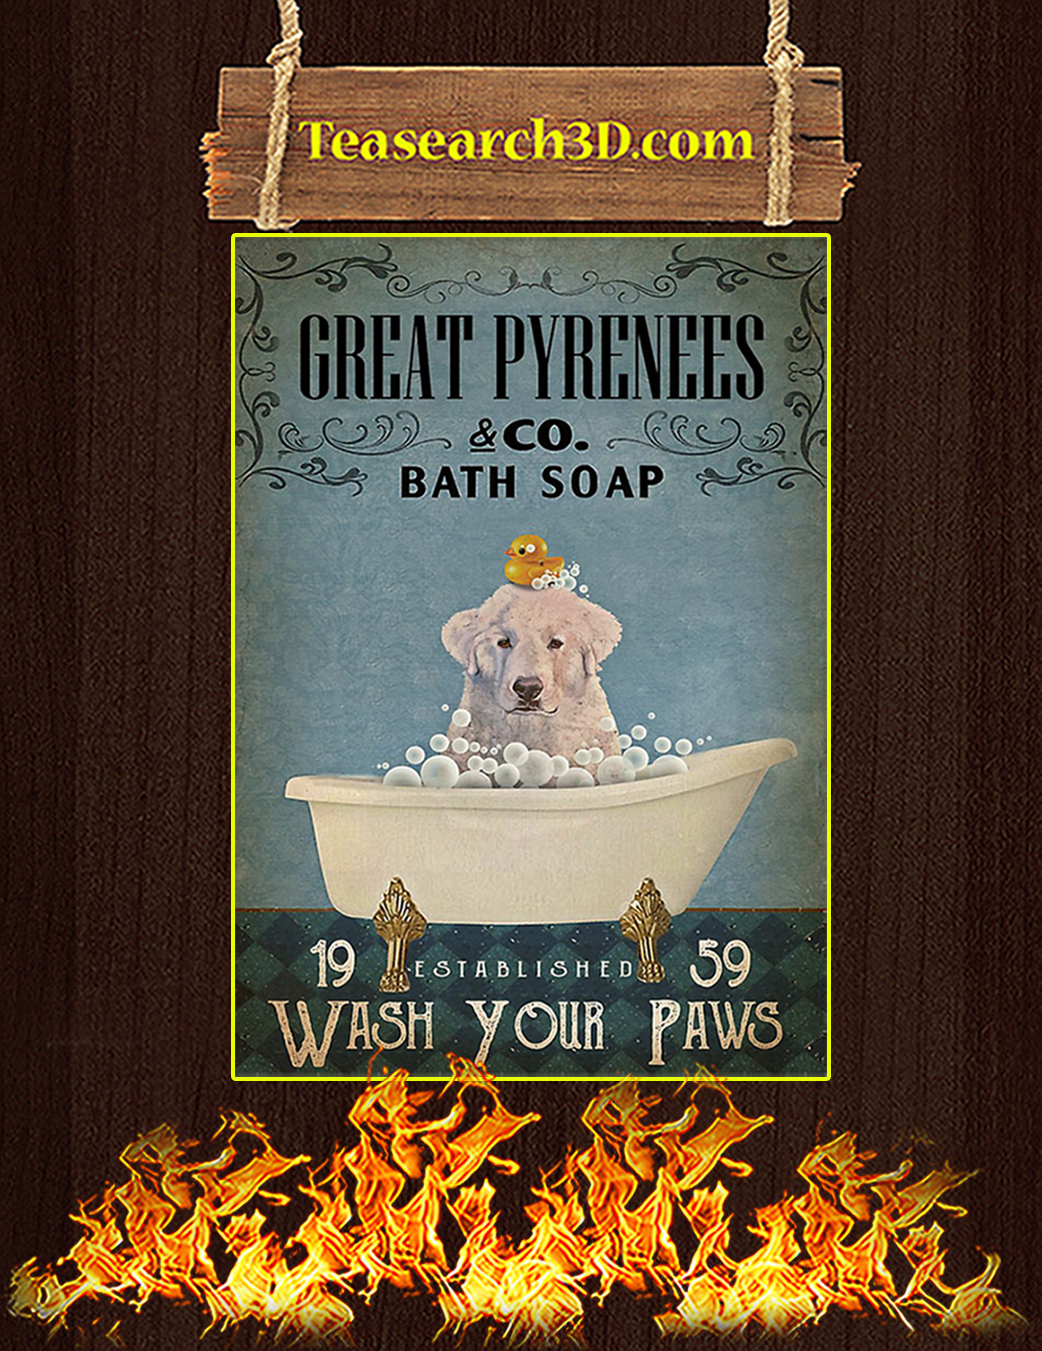 Bath soap company great pyrenees poster A1